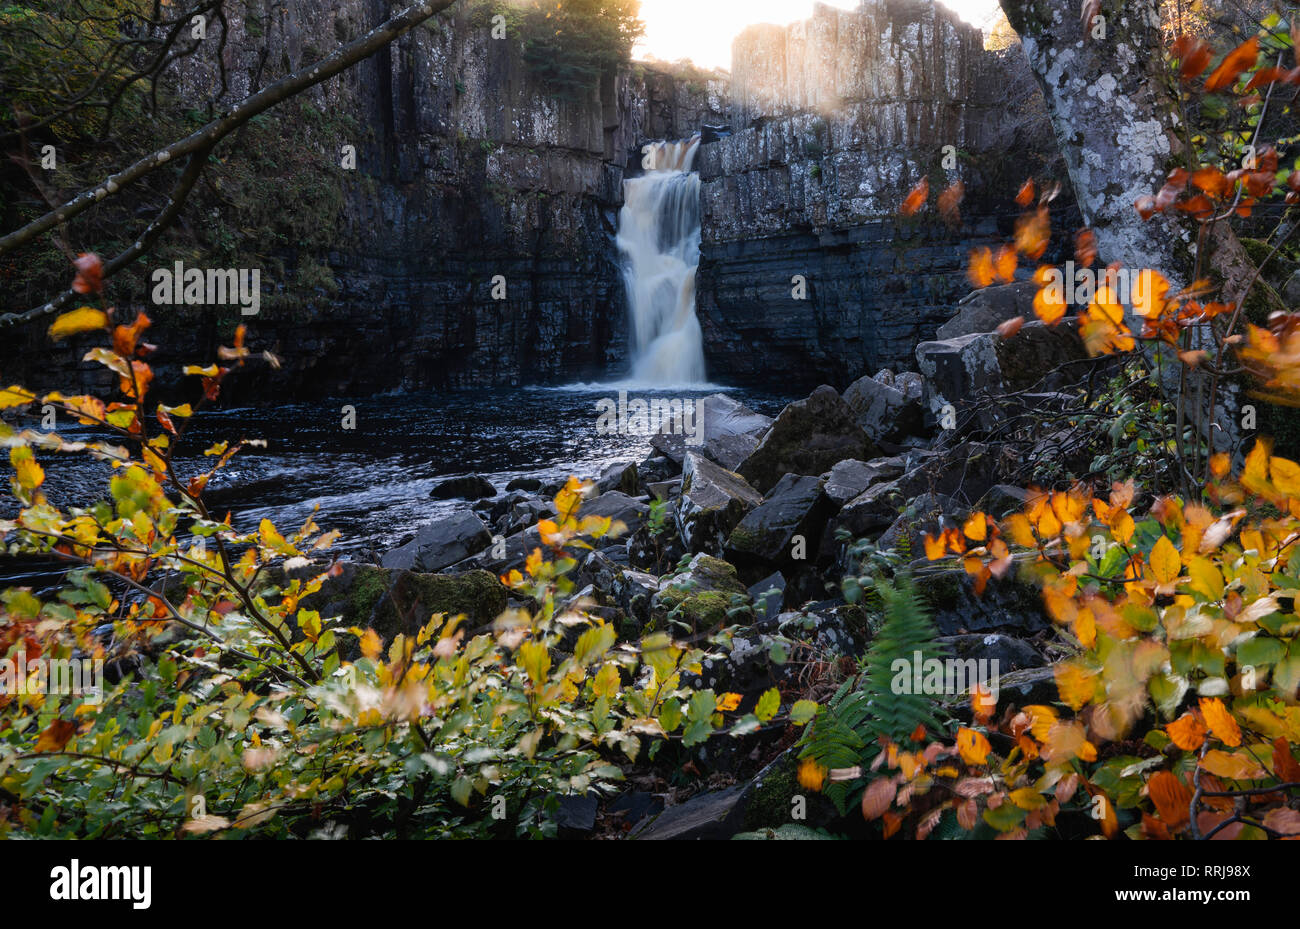 High Force and River Tees framed by autumn leaves, North Pennines Area of Outstanding Natural Beauty, Middleton-in-Teesdale, Teesdale, Durham, England - Stock Image